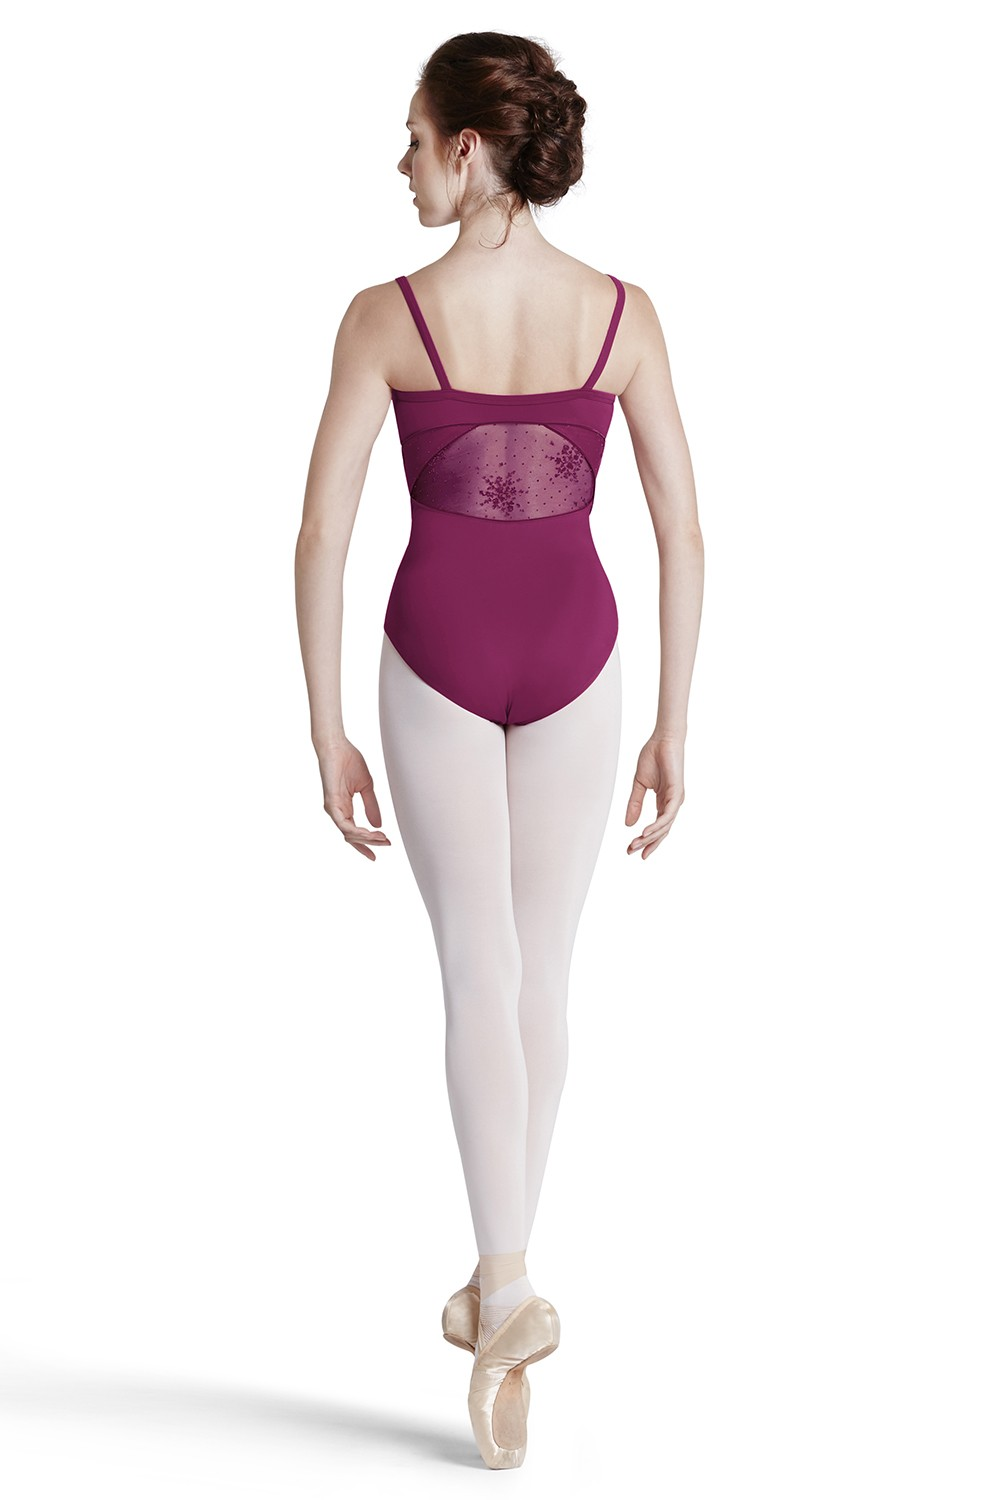 Body A Spalline Sottili Con Motivi Floreali Floccati Women's Dance Leotards